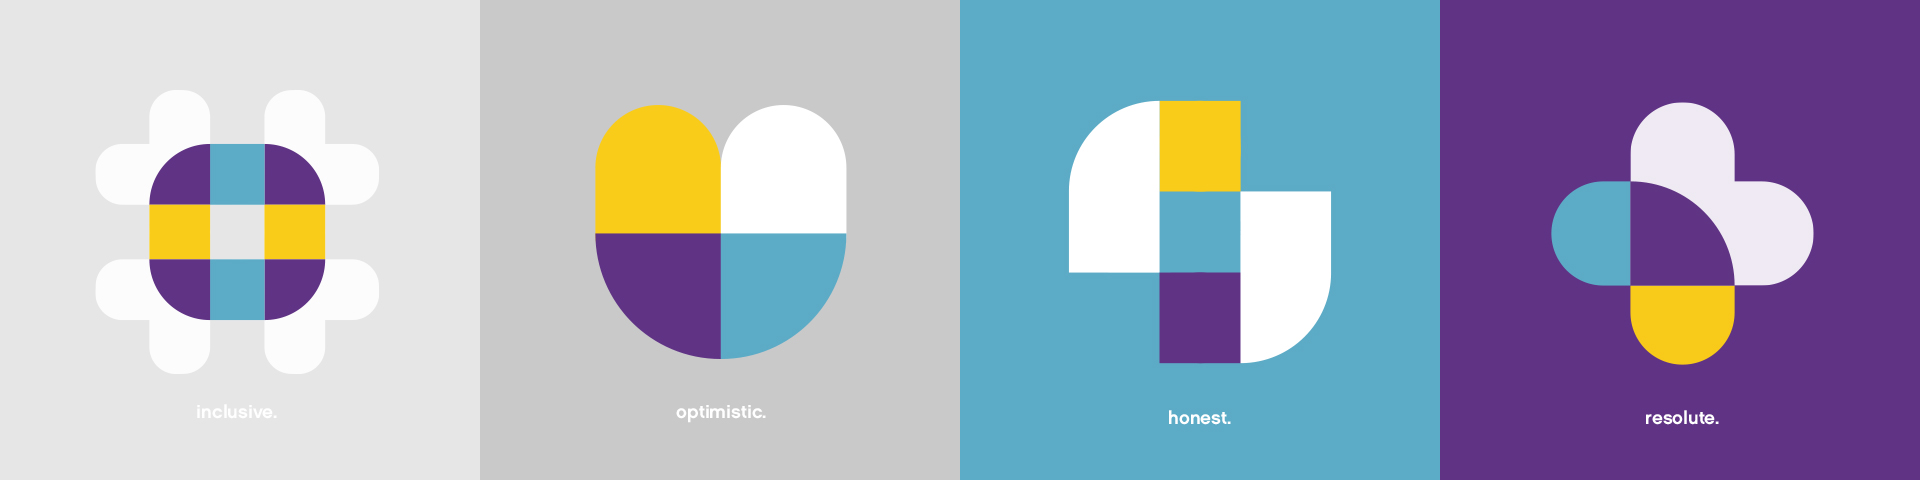 collective_health_branding_illustration